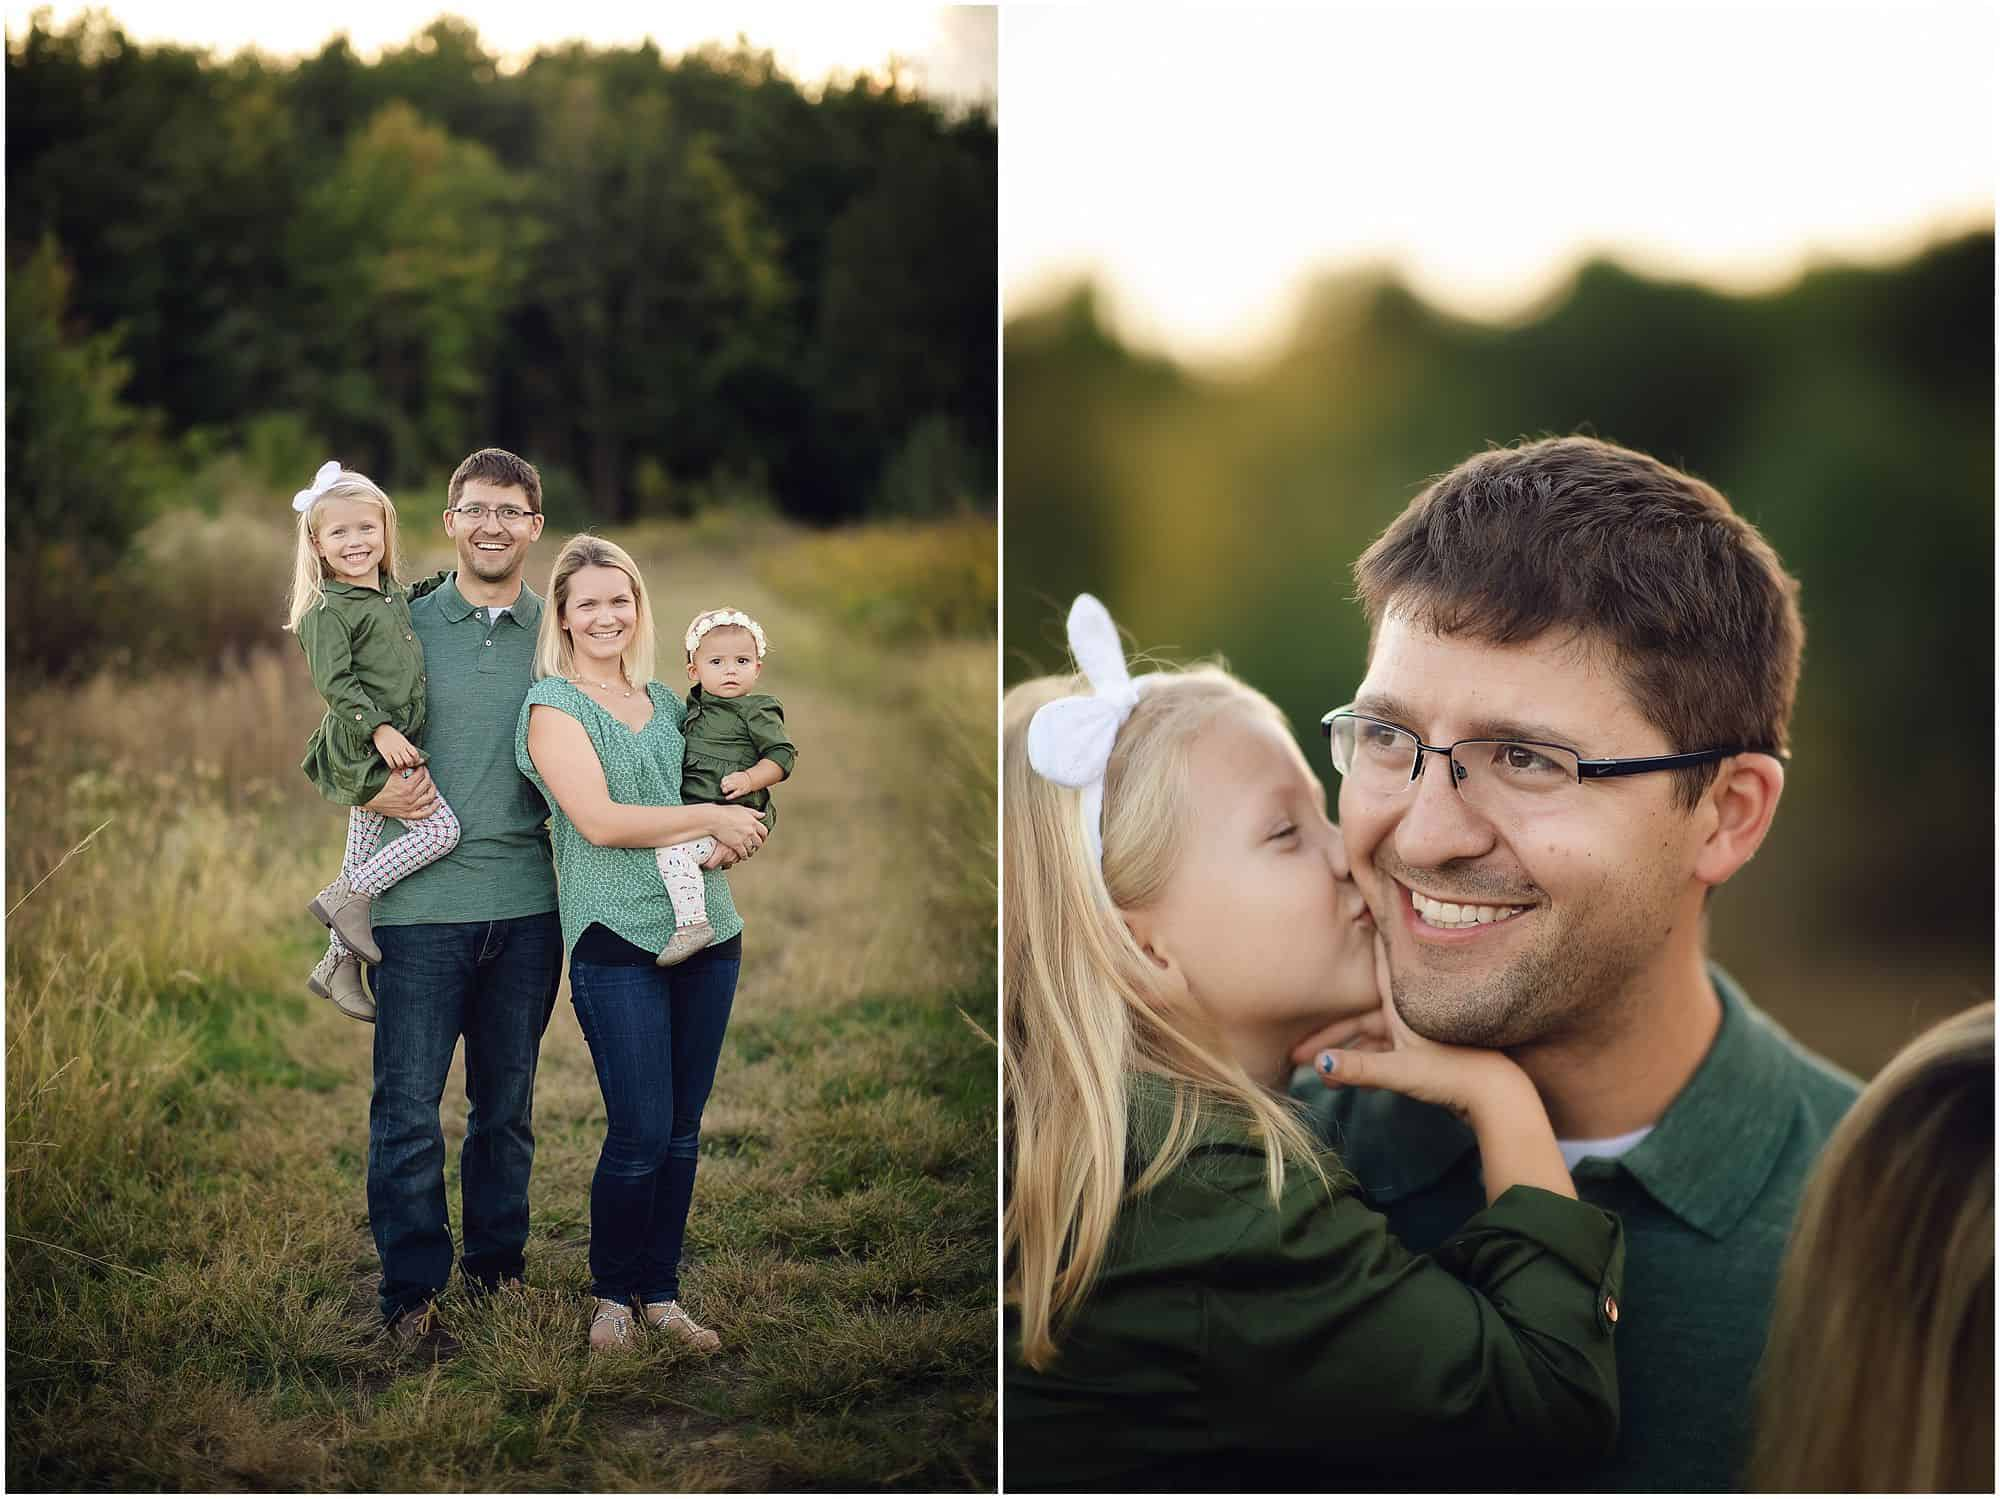 outdoor family photographer in Cincinnati Ohio at Summit Park in Blue Ash with Tomlin family during a fall day